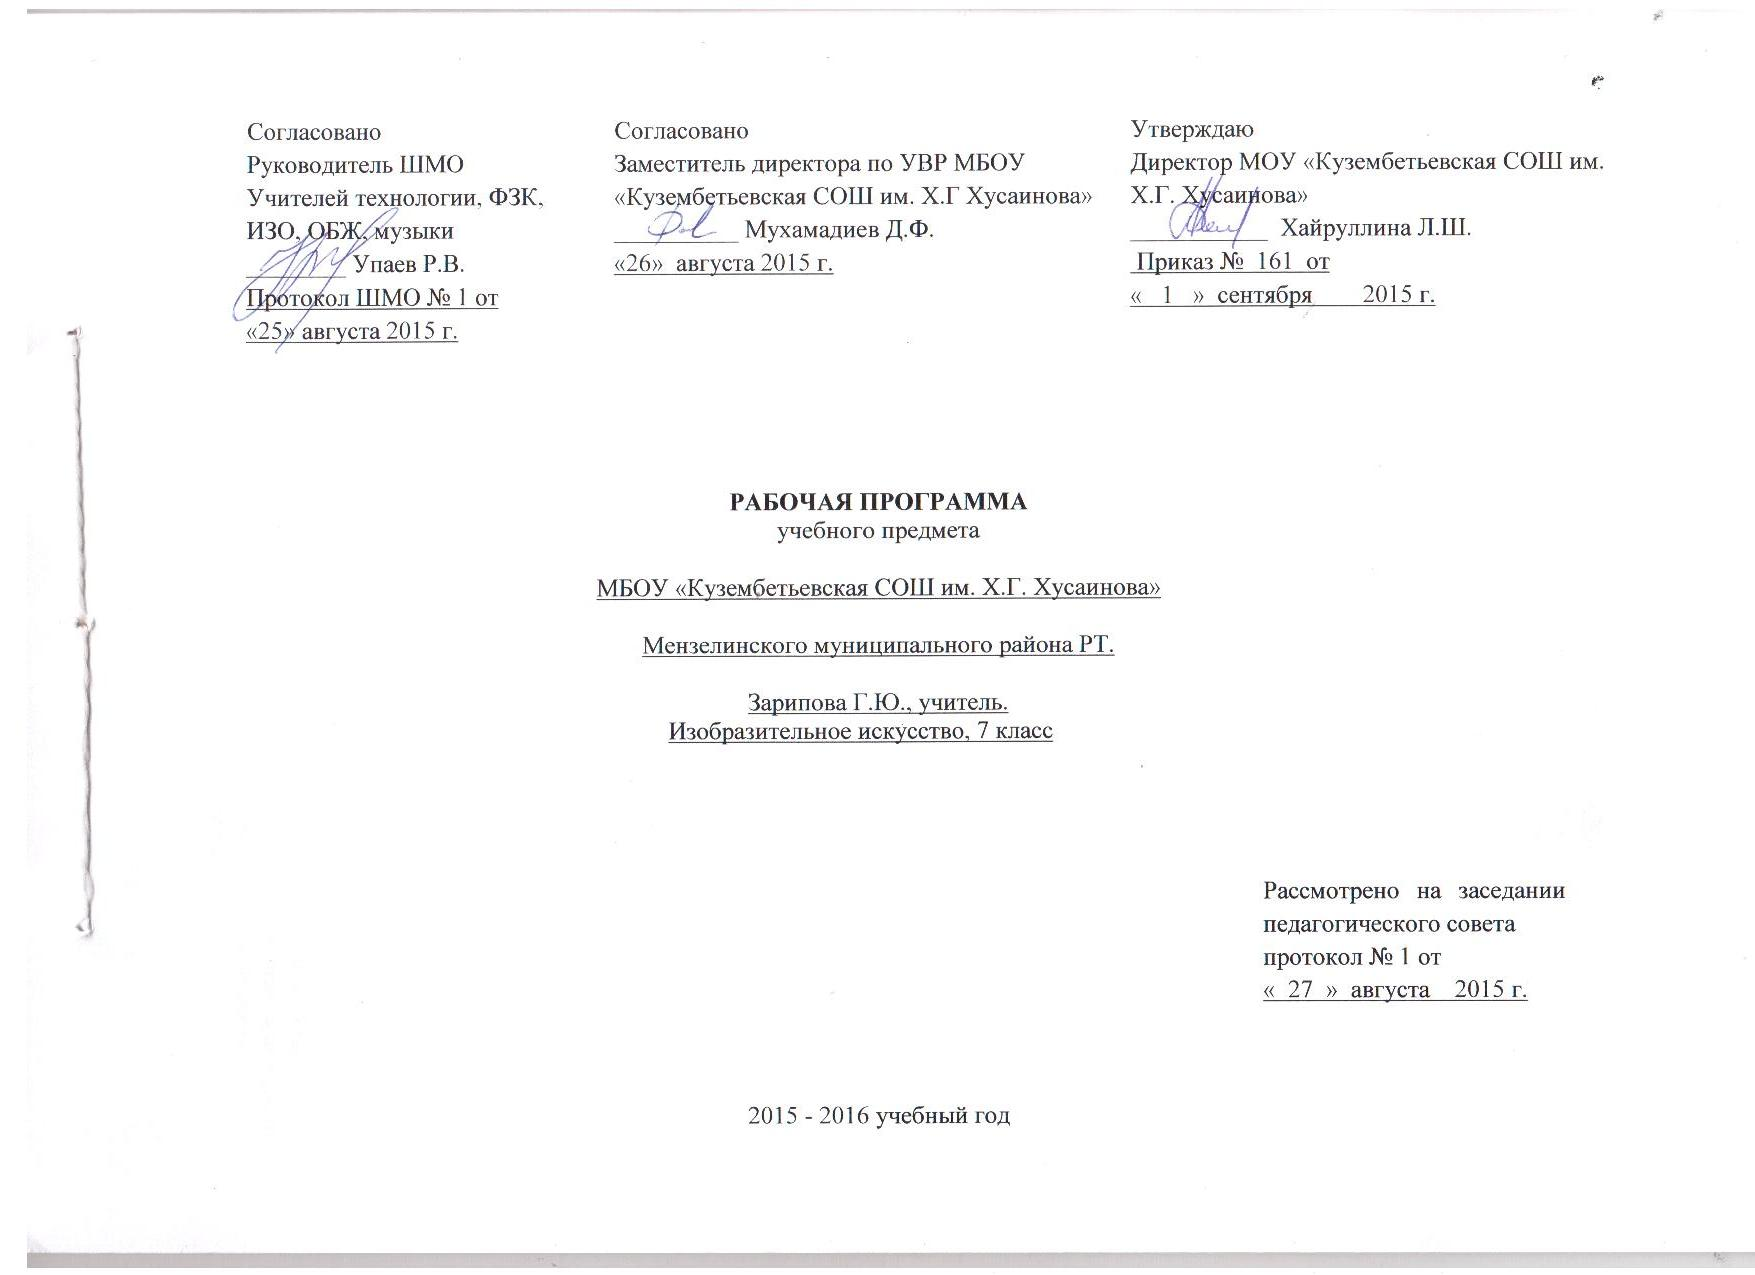 C:\Documents and Settings\школа\Local Settings\Temporary Internet Files\Content.Word\титул 005.jpg